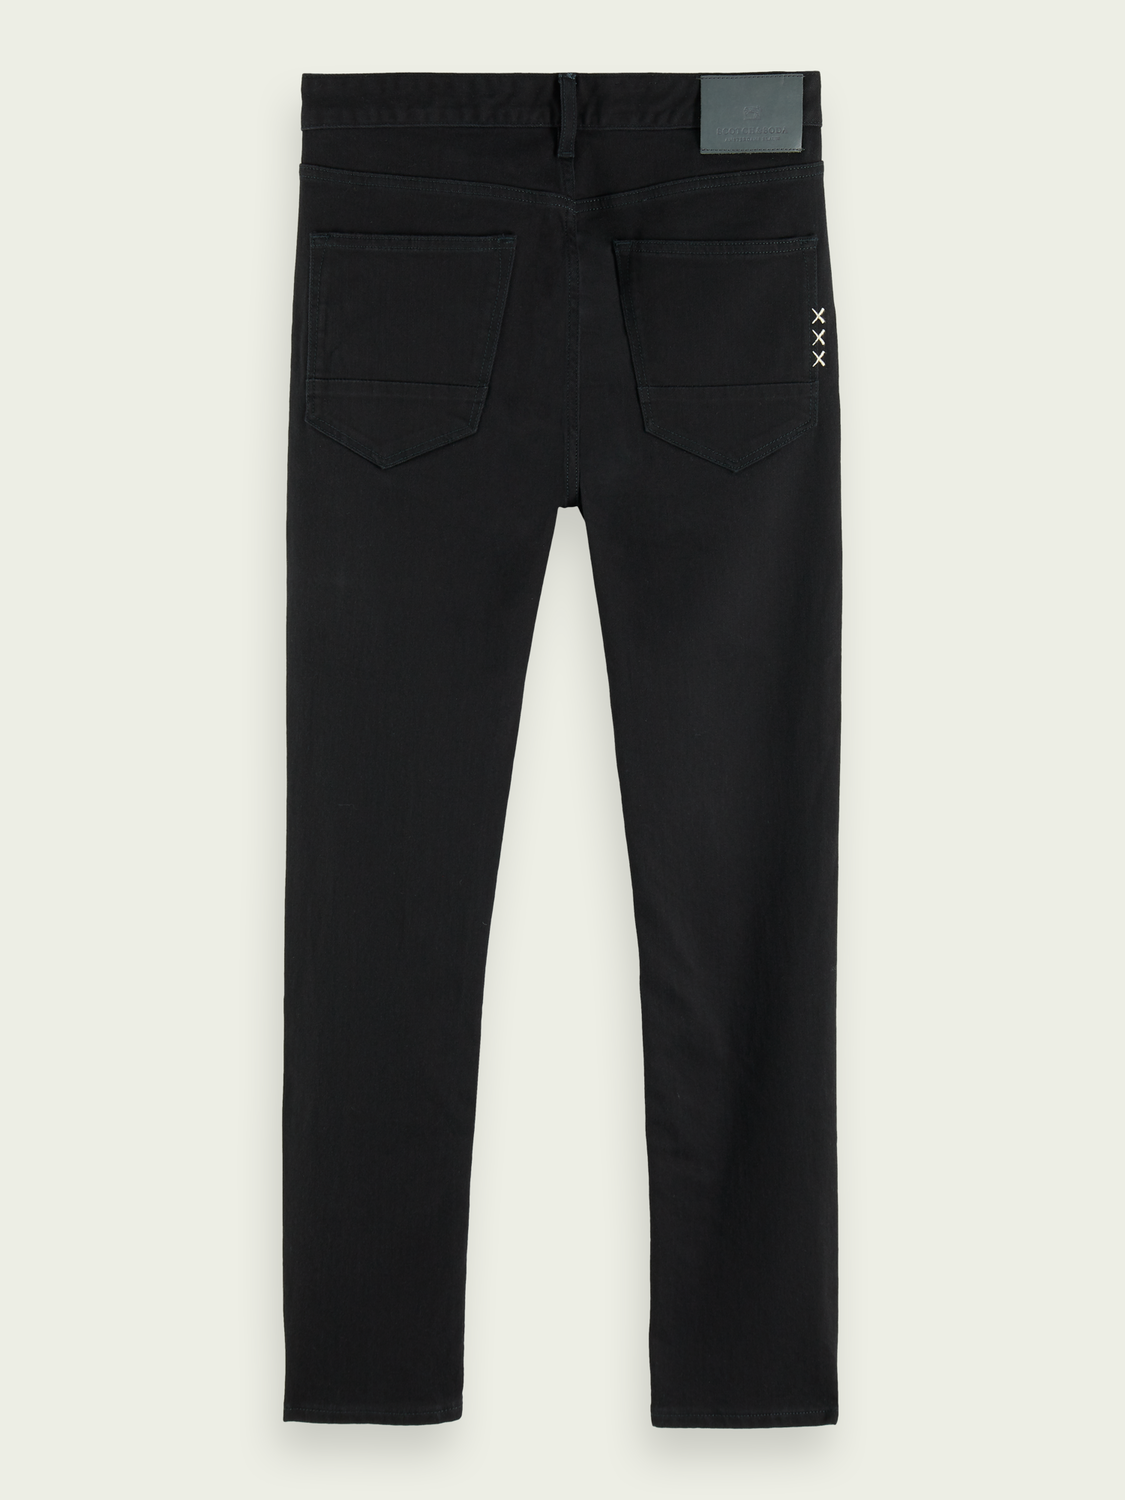 Men Skim - Stay Black |Super slim jeans